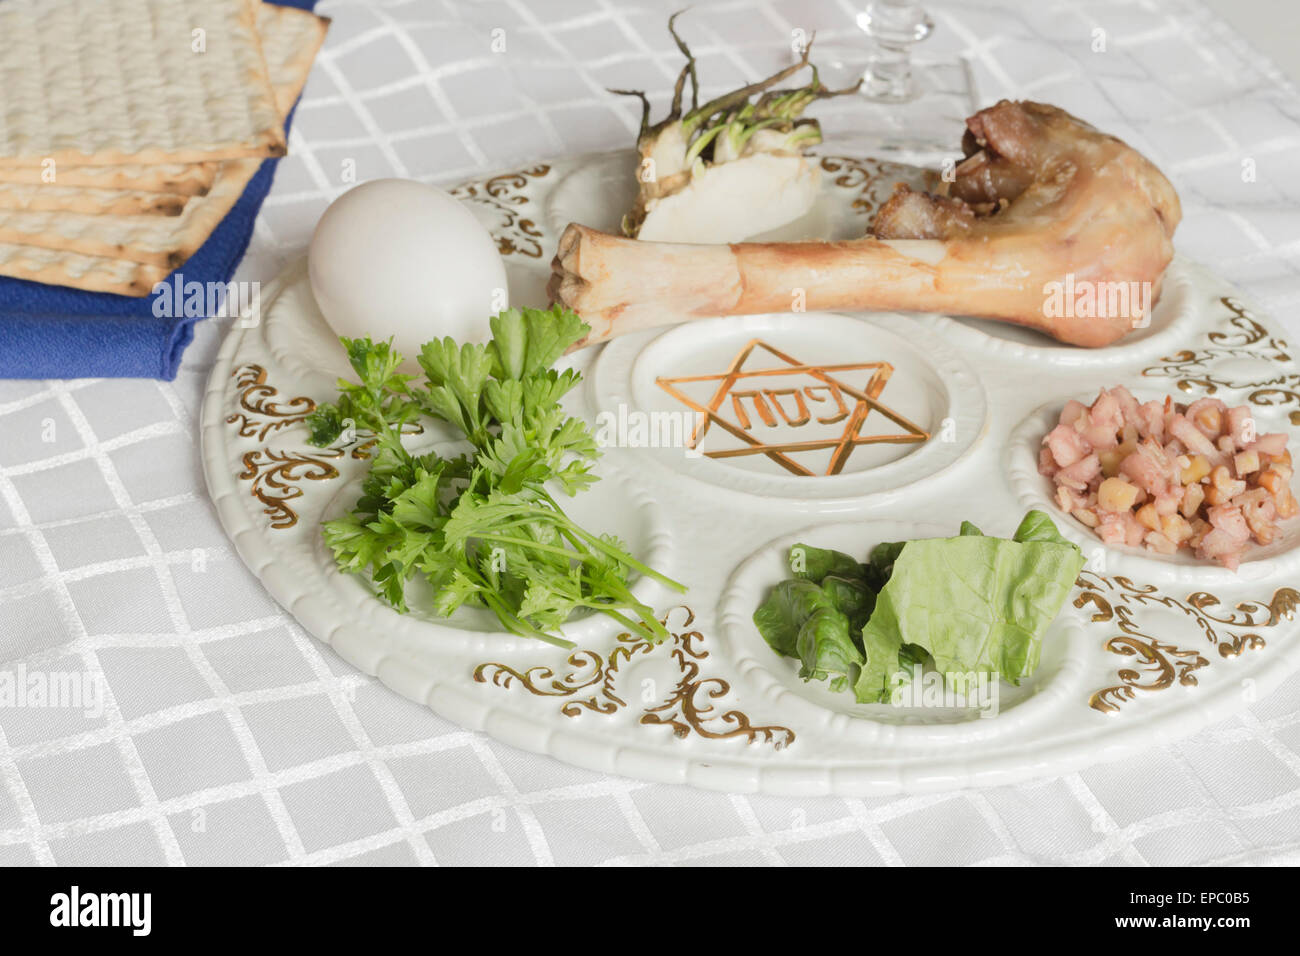 Jewish seder plate  Six foods make up this passover meal